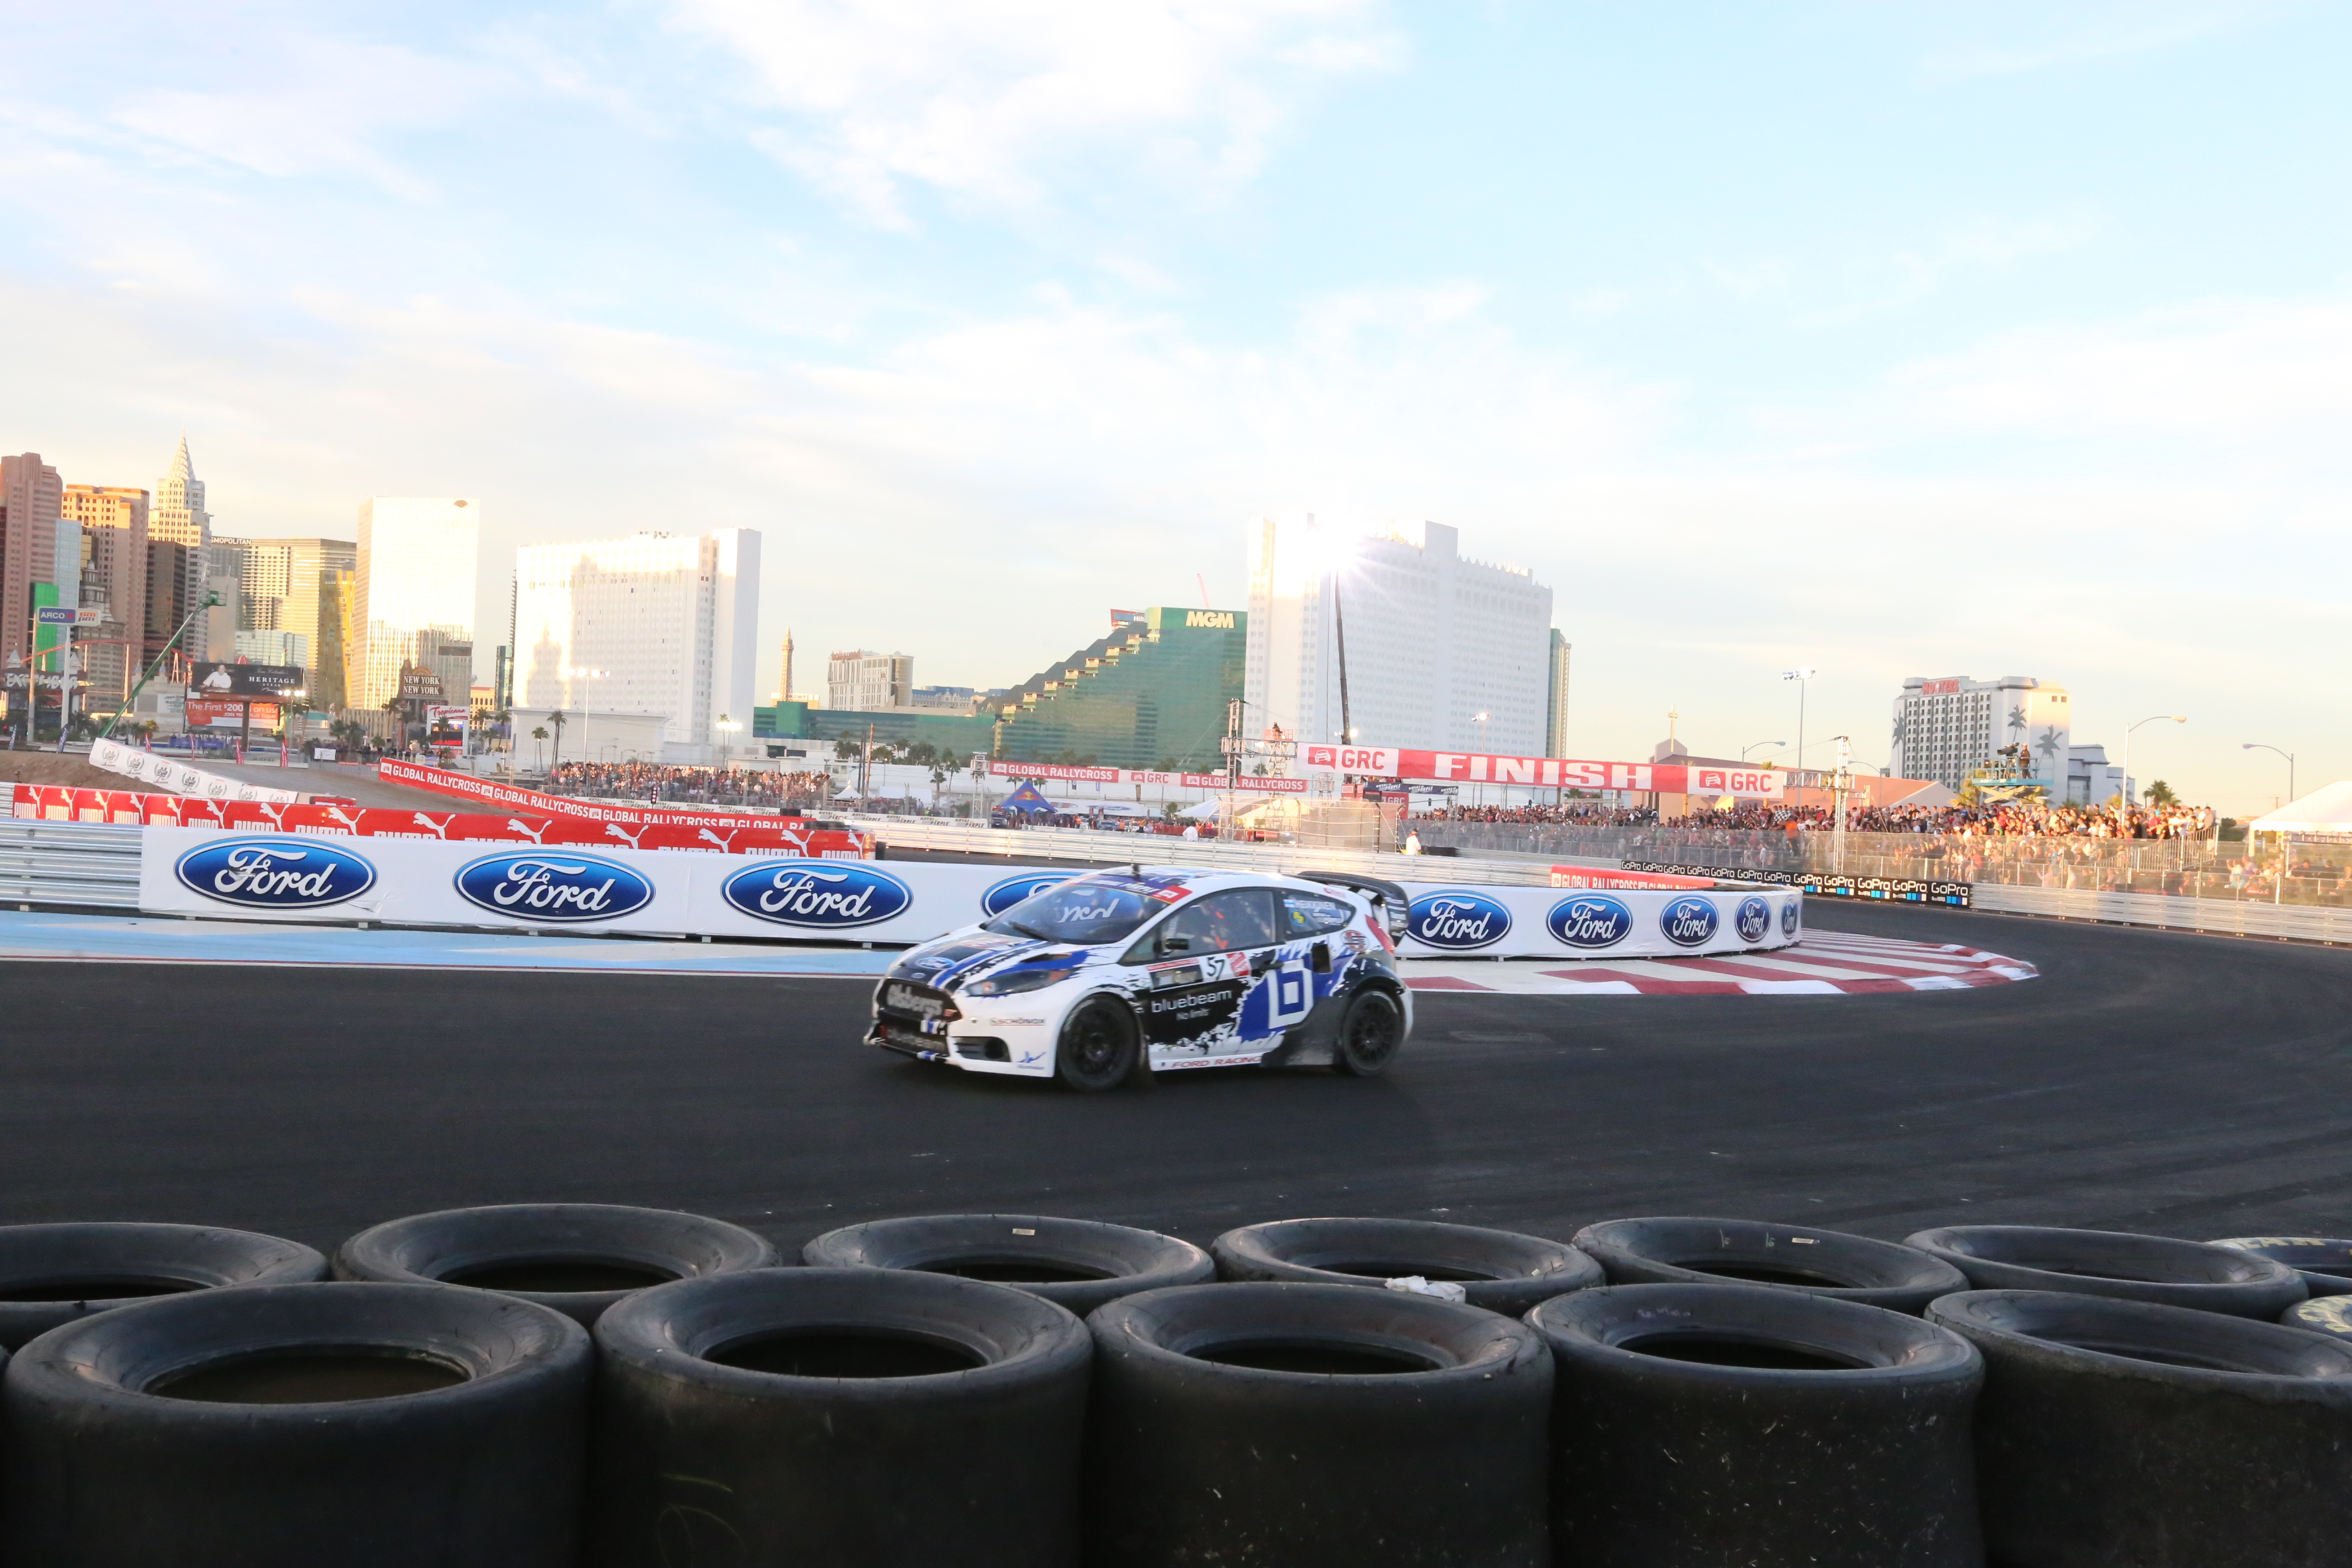 BLOCK WINS FIRST GLOBAL RALLYCROSS RACE; HEIKKINEN, FOUST, AND BLOCK TAKE 1-2-3 IN CHAMPIONSHIP FOR FORD